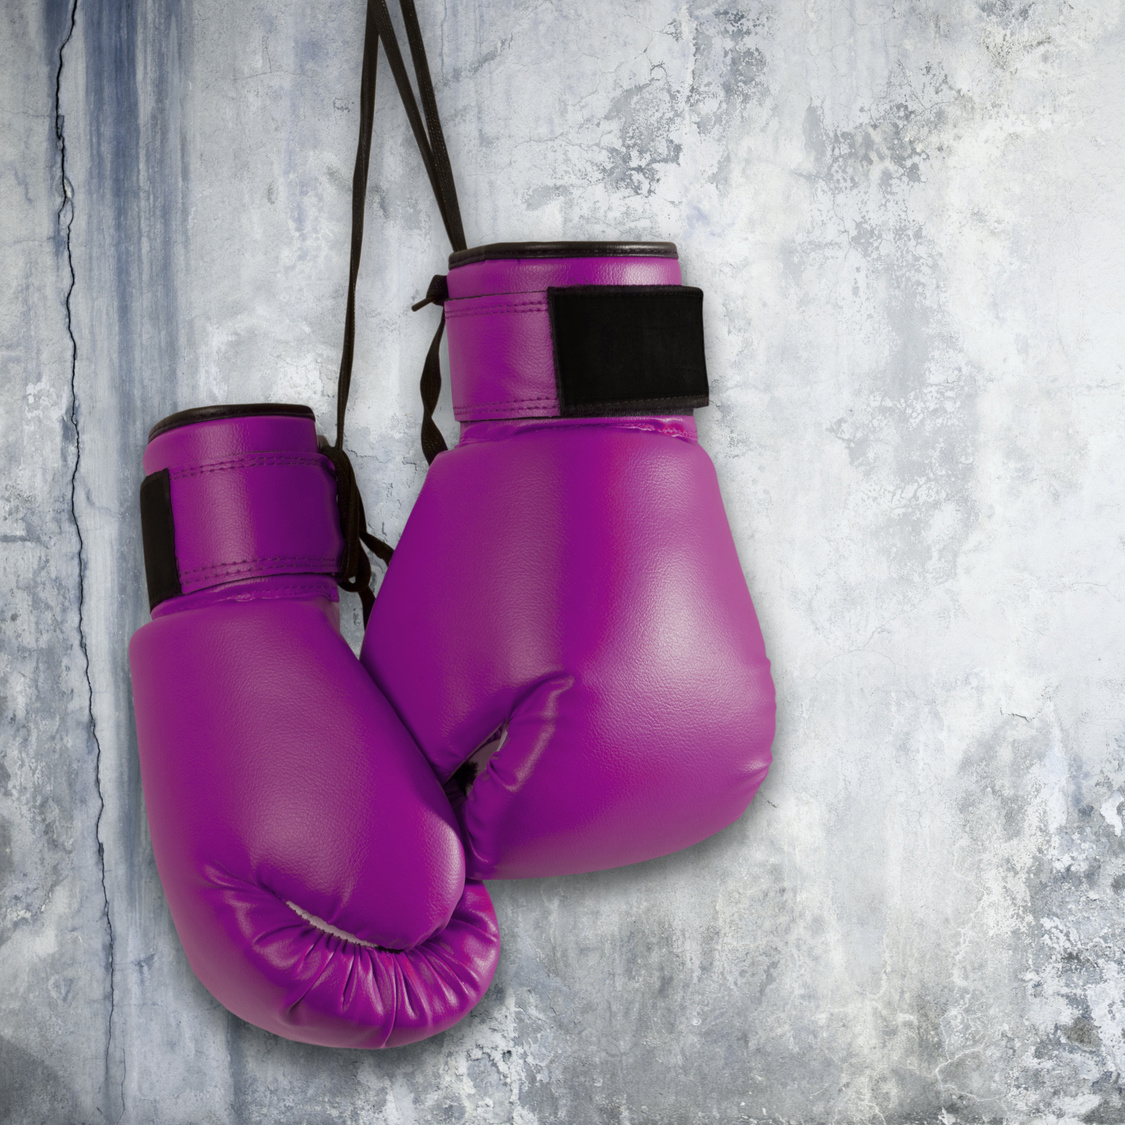 Knock out irritable bowel disease before pregnancy | boxing gloves image